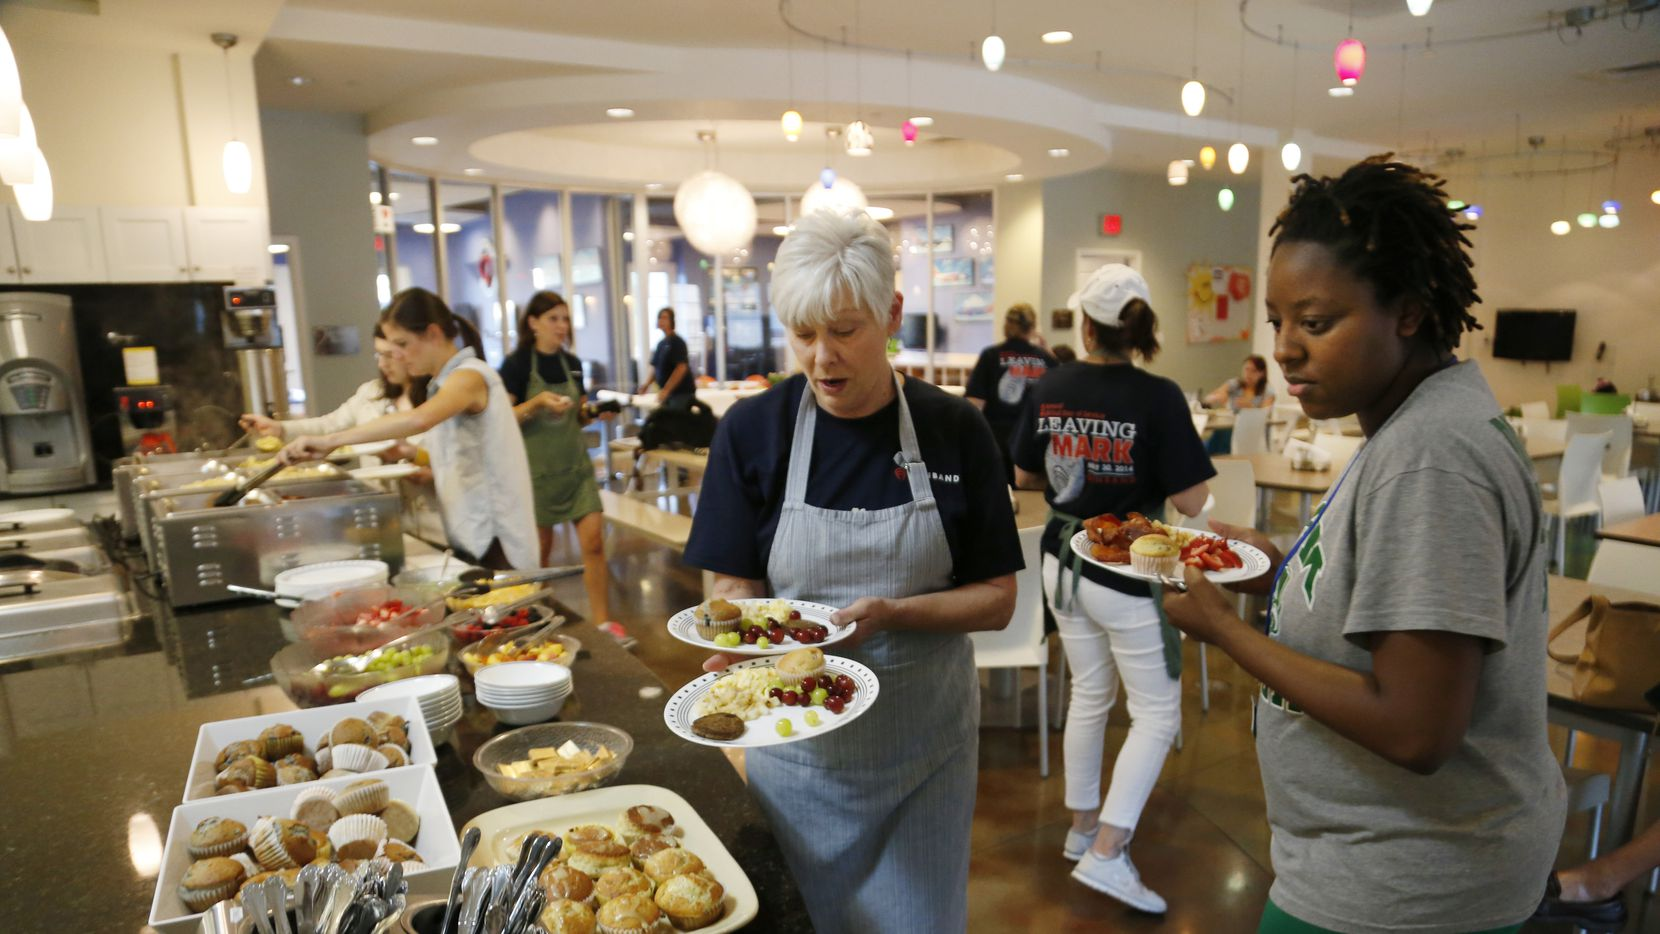 A new fundraising cookbook from Ronald McDonald House of Dallas features recipes from top chefs. Here, employees from Genband help prepare breakfast for the organization.